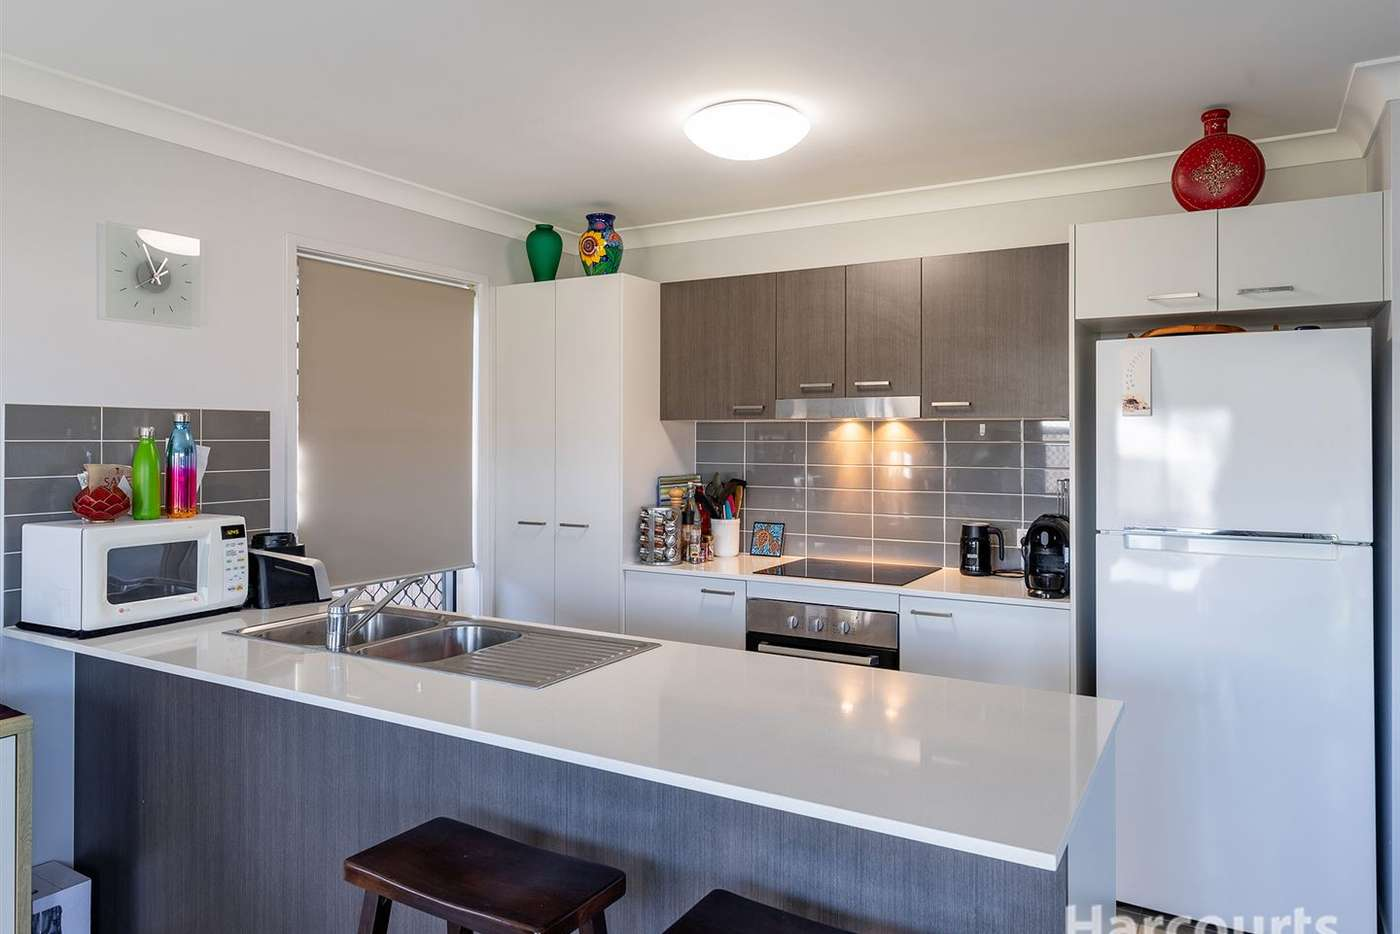 Main view of Homely house listing, 32A Retreat Cres, Narangba QLD 4504